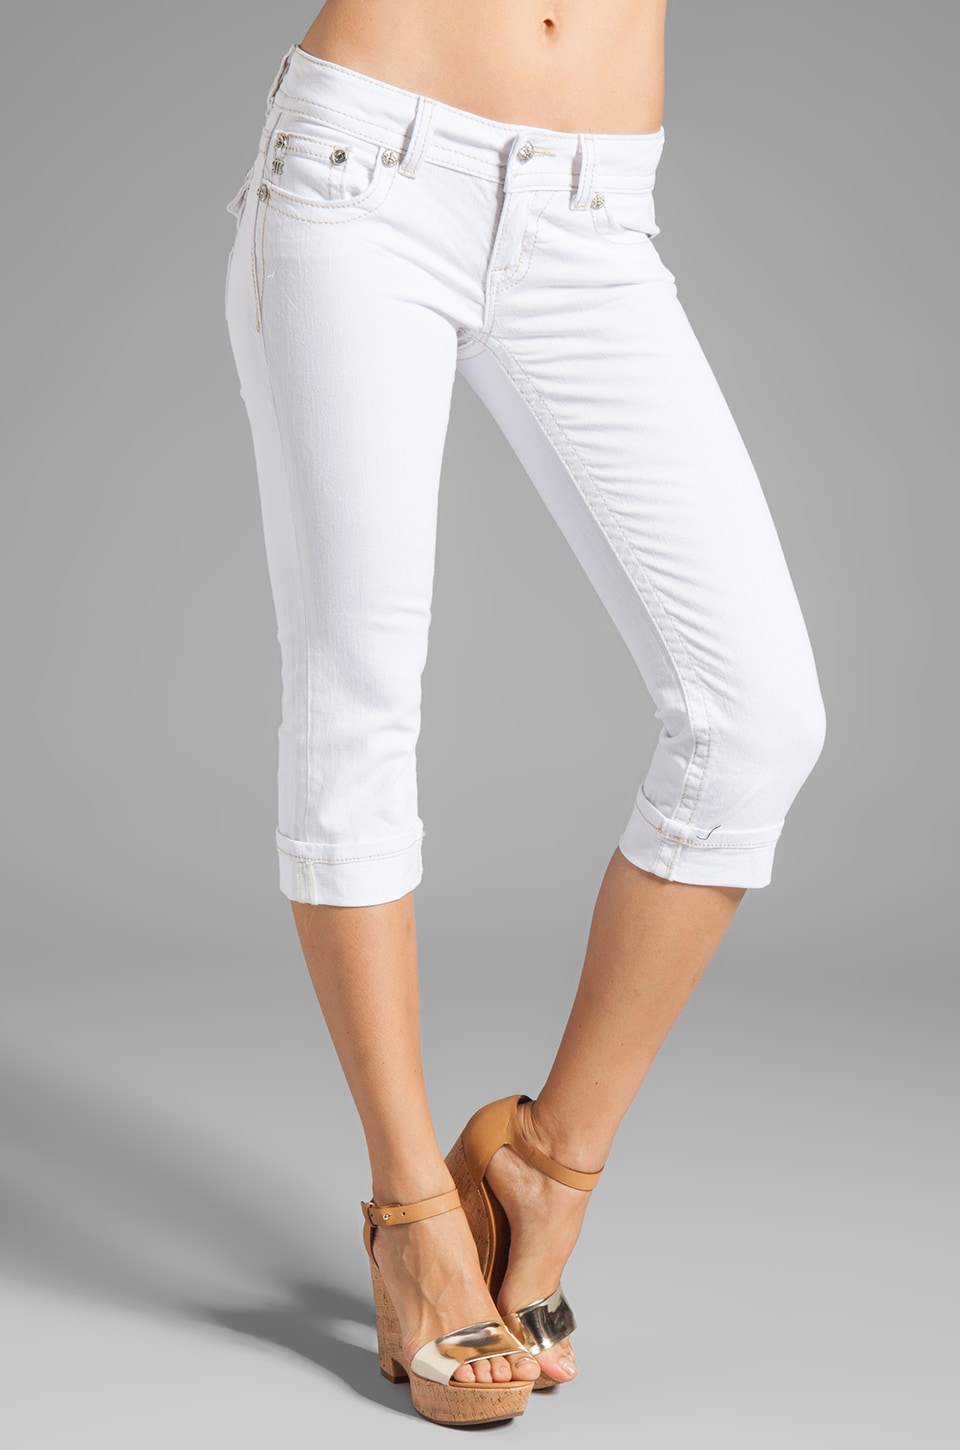 Miss Me Jeans Capri in White | REVOLVE